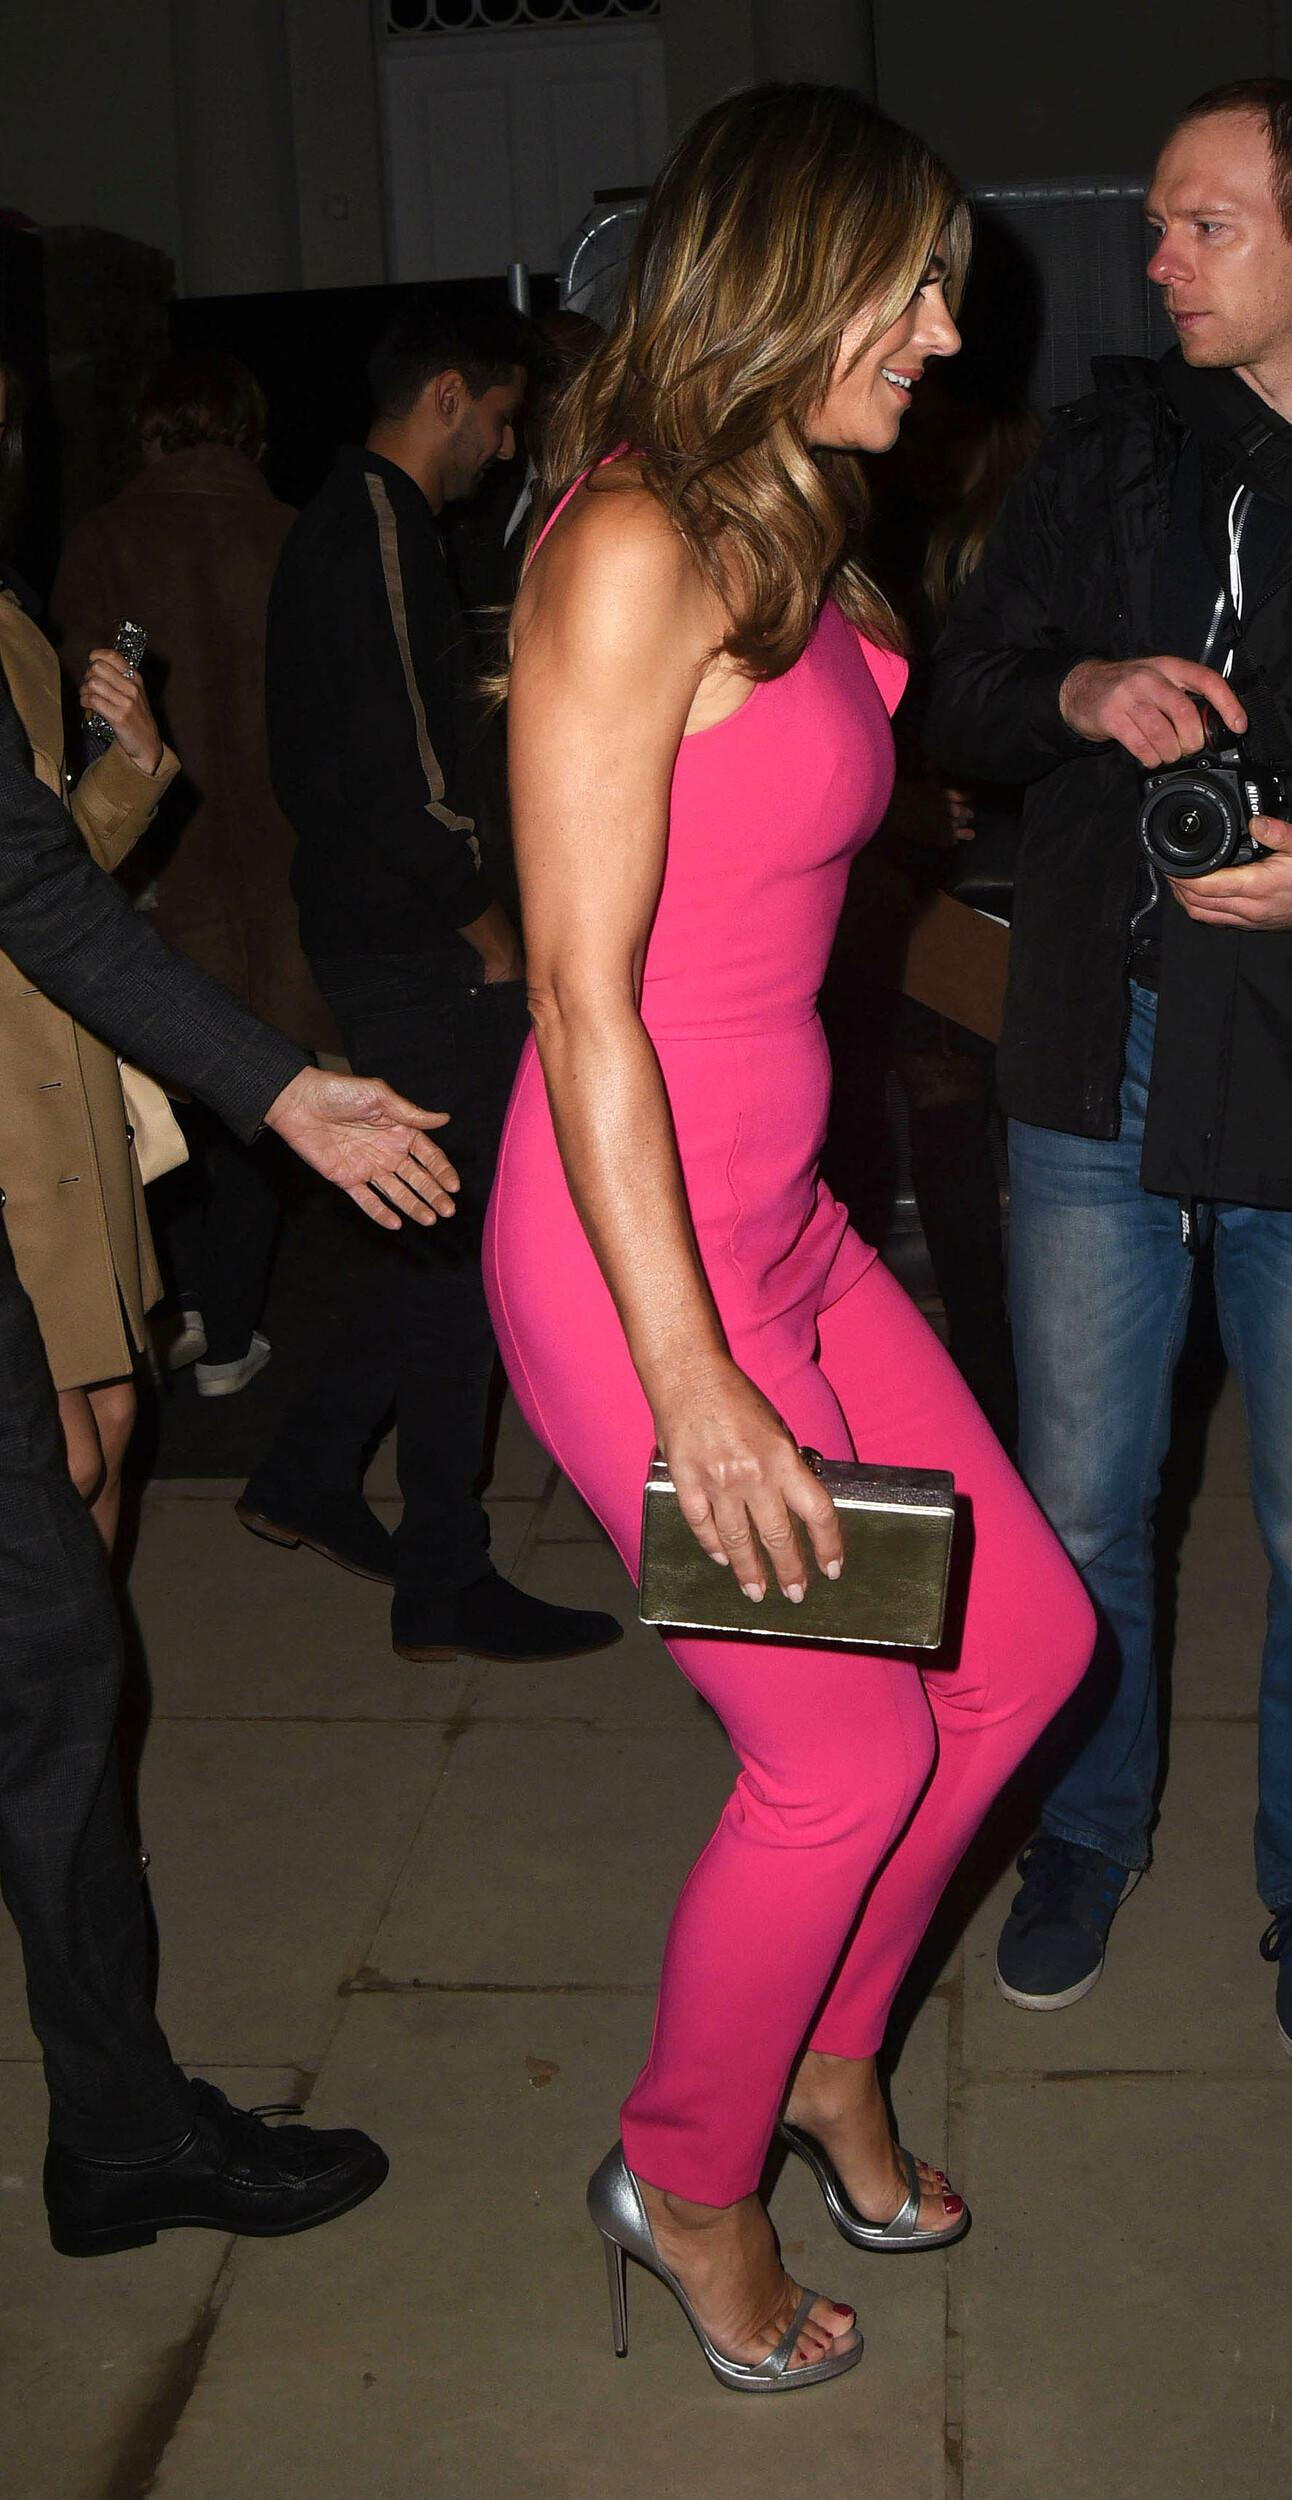 Photo by: KGC-325/STAR MAX/IPx 2017 11/8/17 Elizabeth Hurley and Holiday House London launch party in London, England.